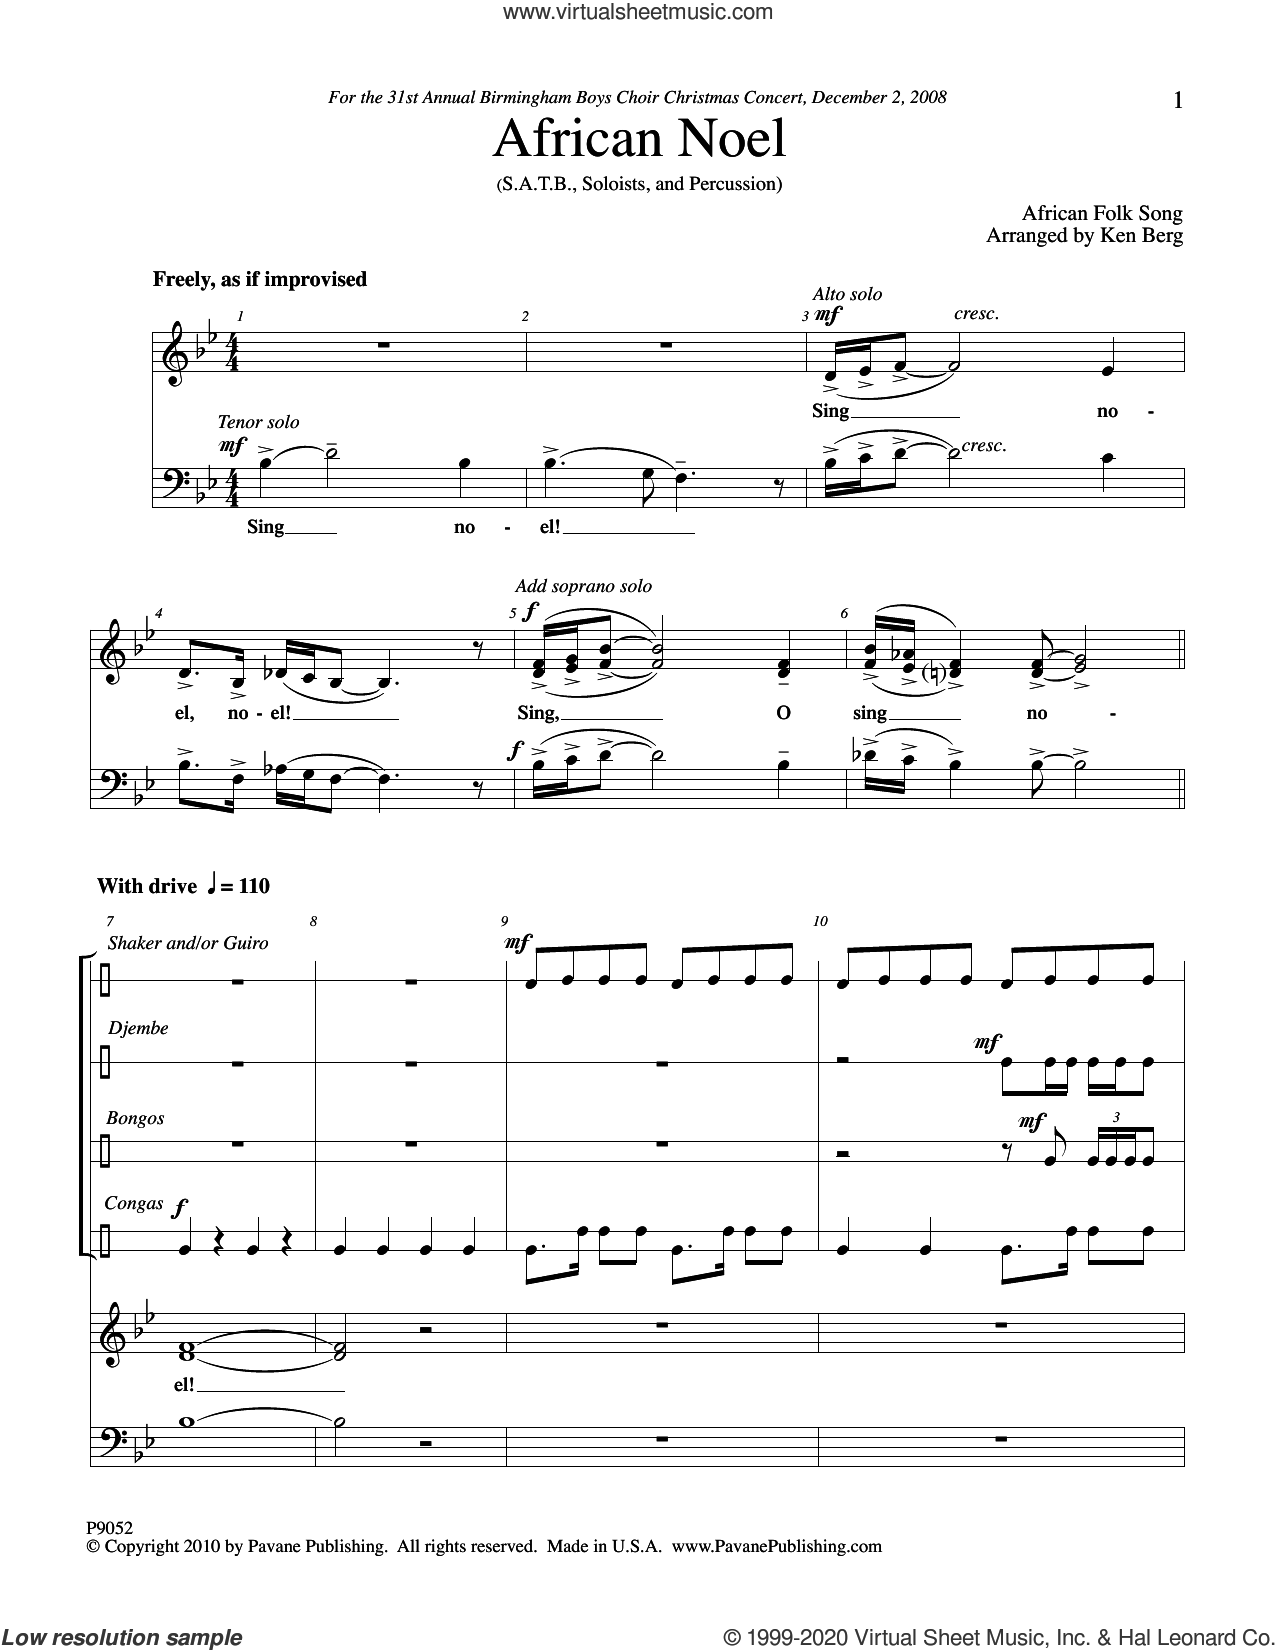 African Noel (COMPLETE) sheet music for orchestra/band (Percussion) by Ken Berg, intermediate skill level